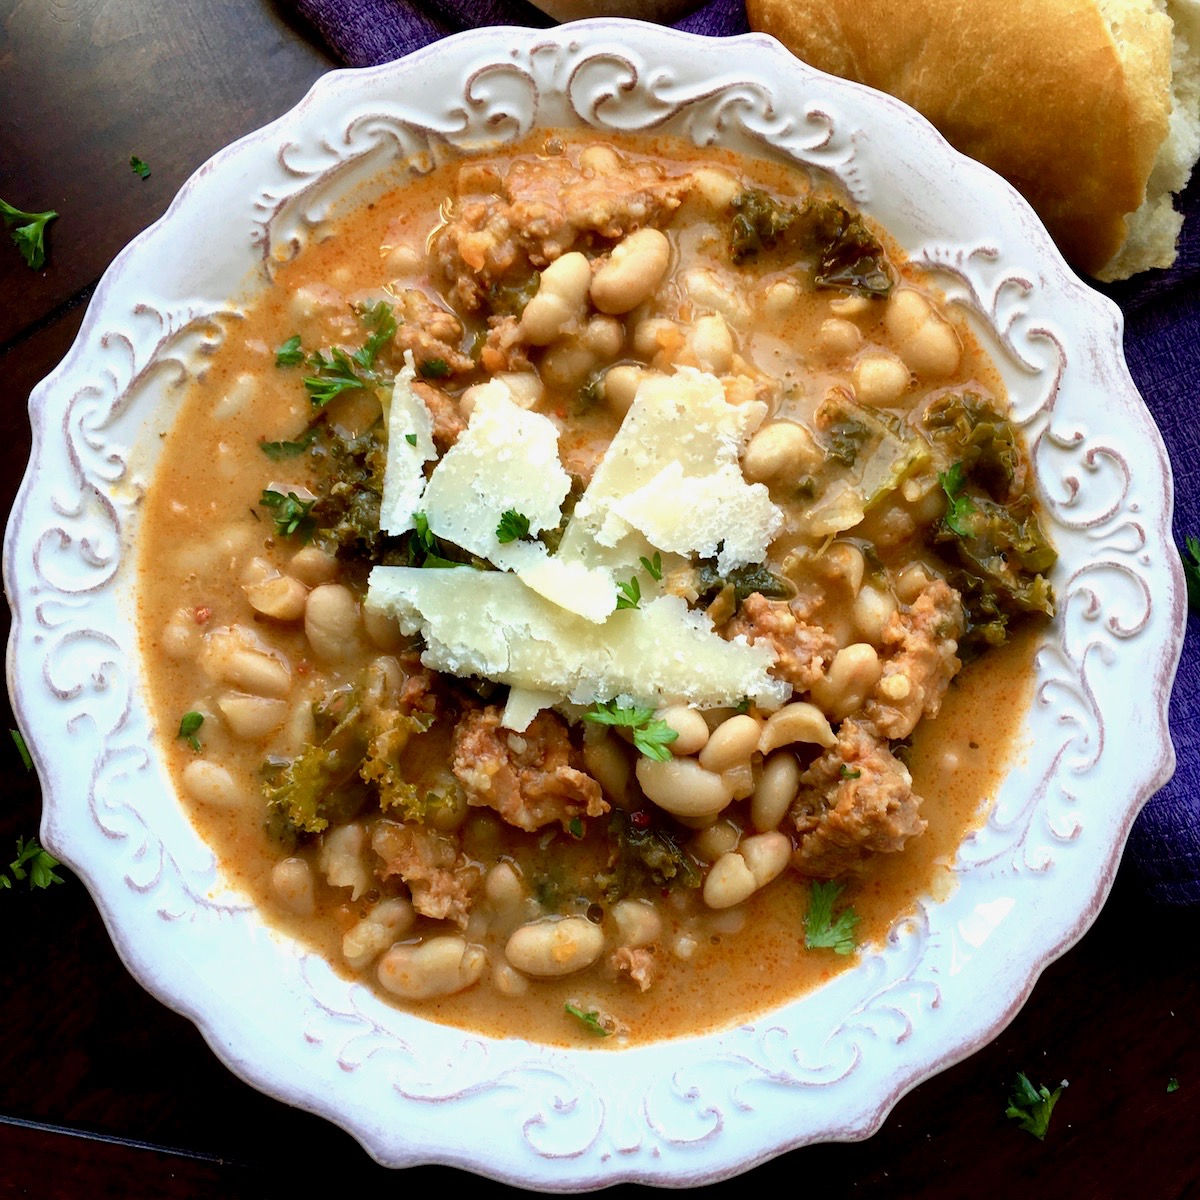 This delicious Dutch Oven White Bean, Spicy Sausage and Kale Soup is pure comfort food for the fall and winter seasons.